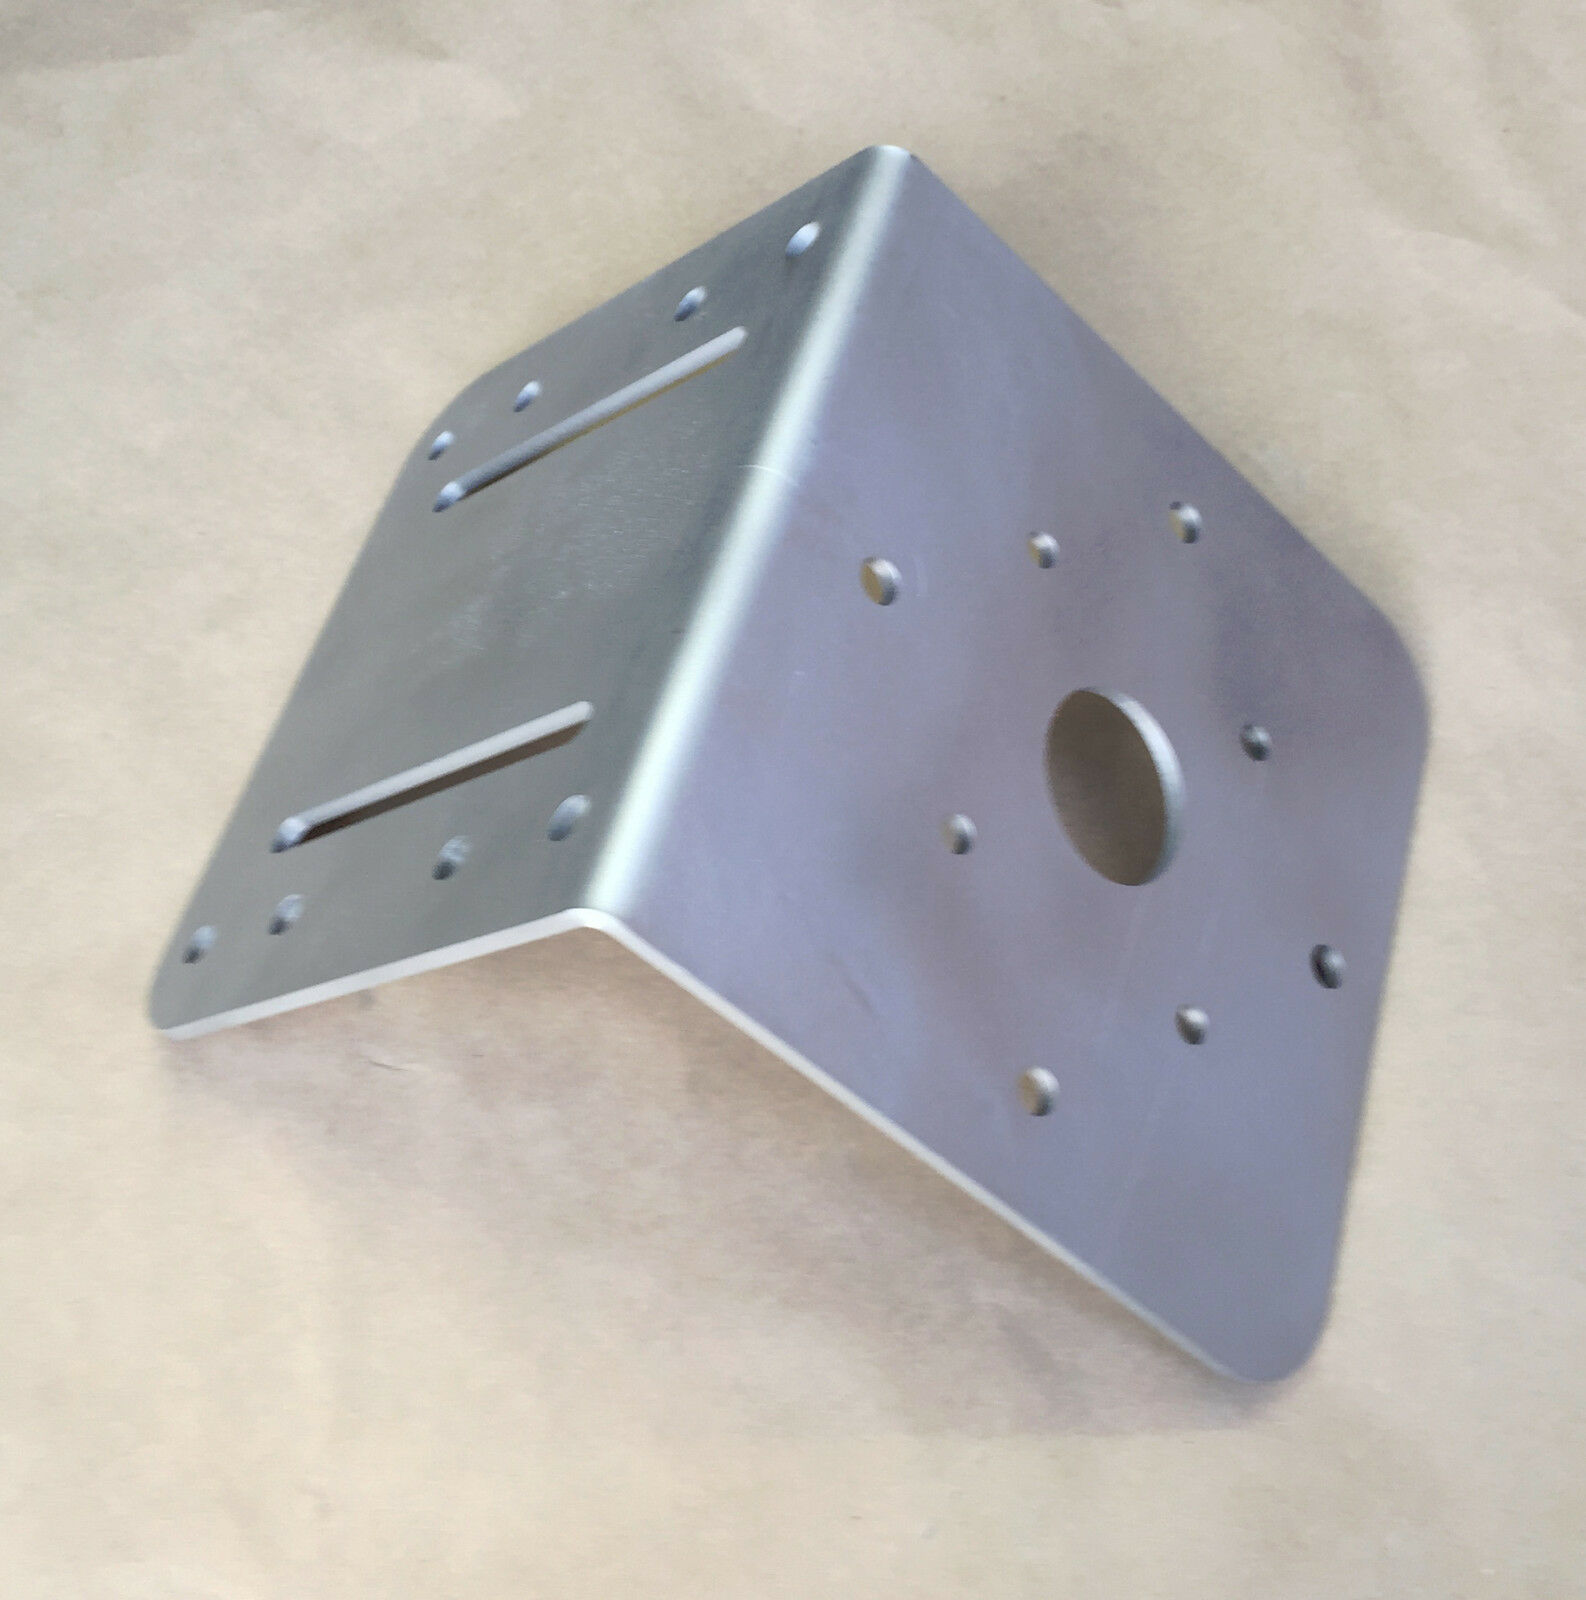 Manta II BASE PLATE ONLY  FITS 10 hp DC electric MANTA motor 12 24 48 Etek  up to 70% off